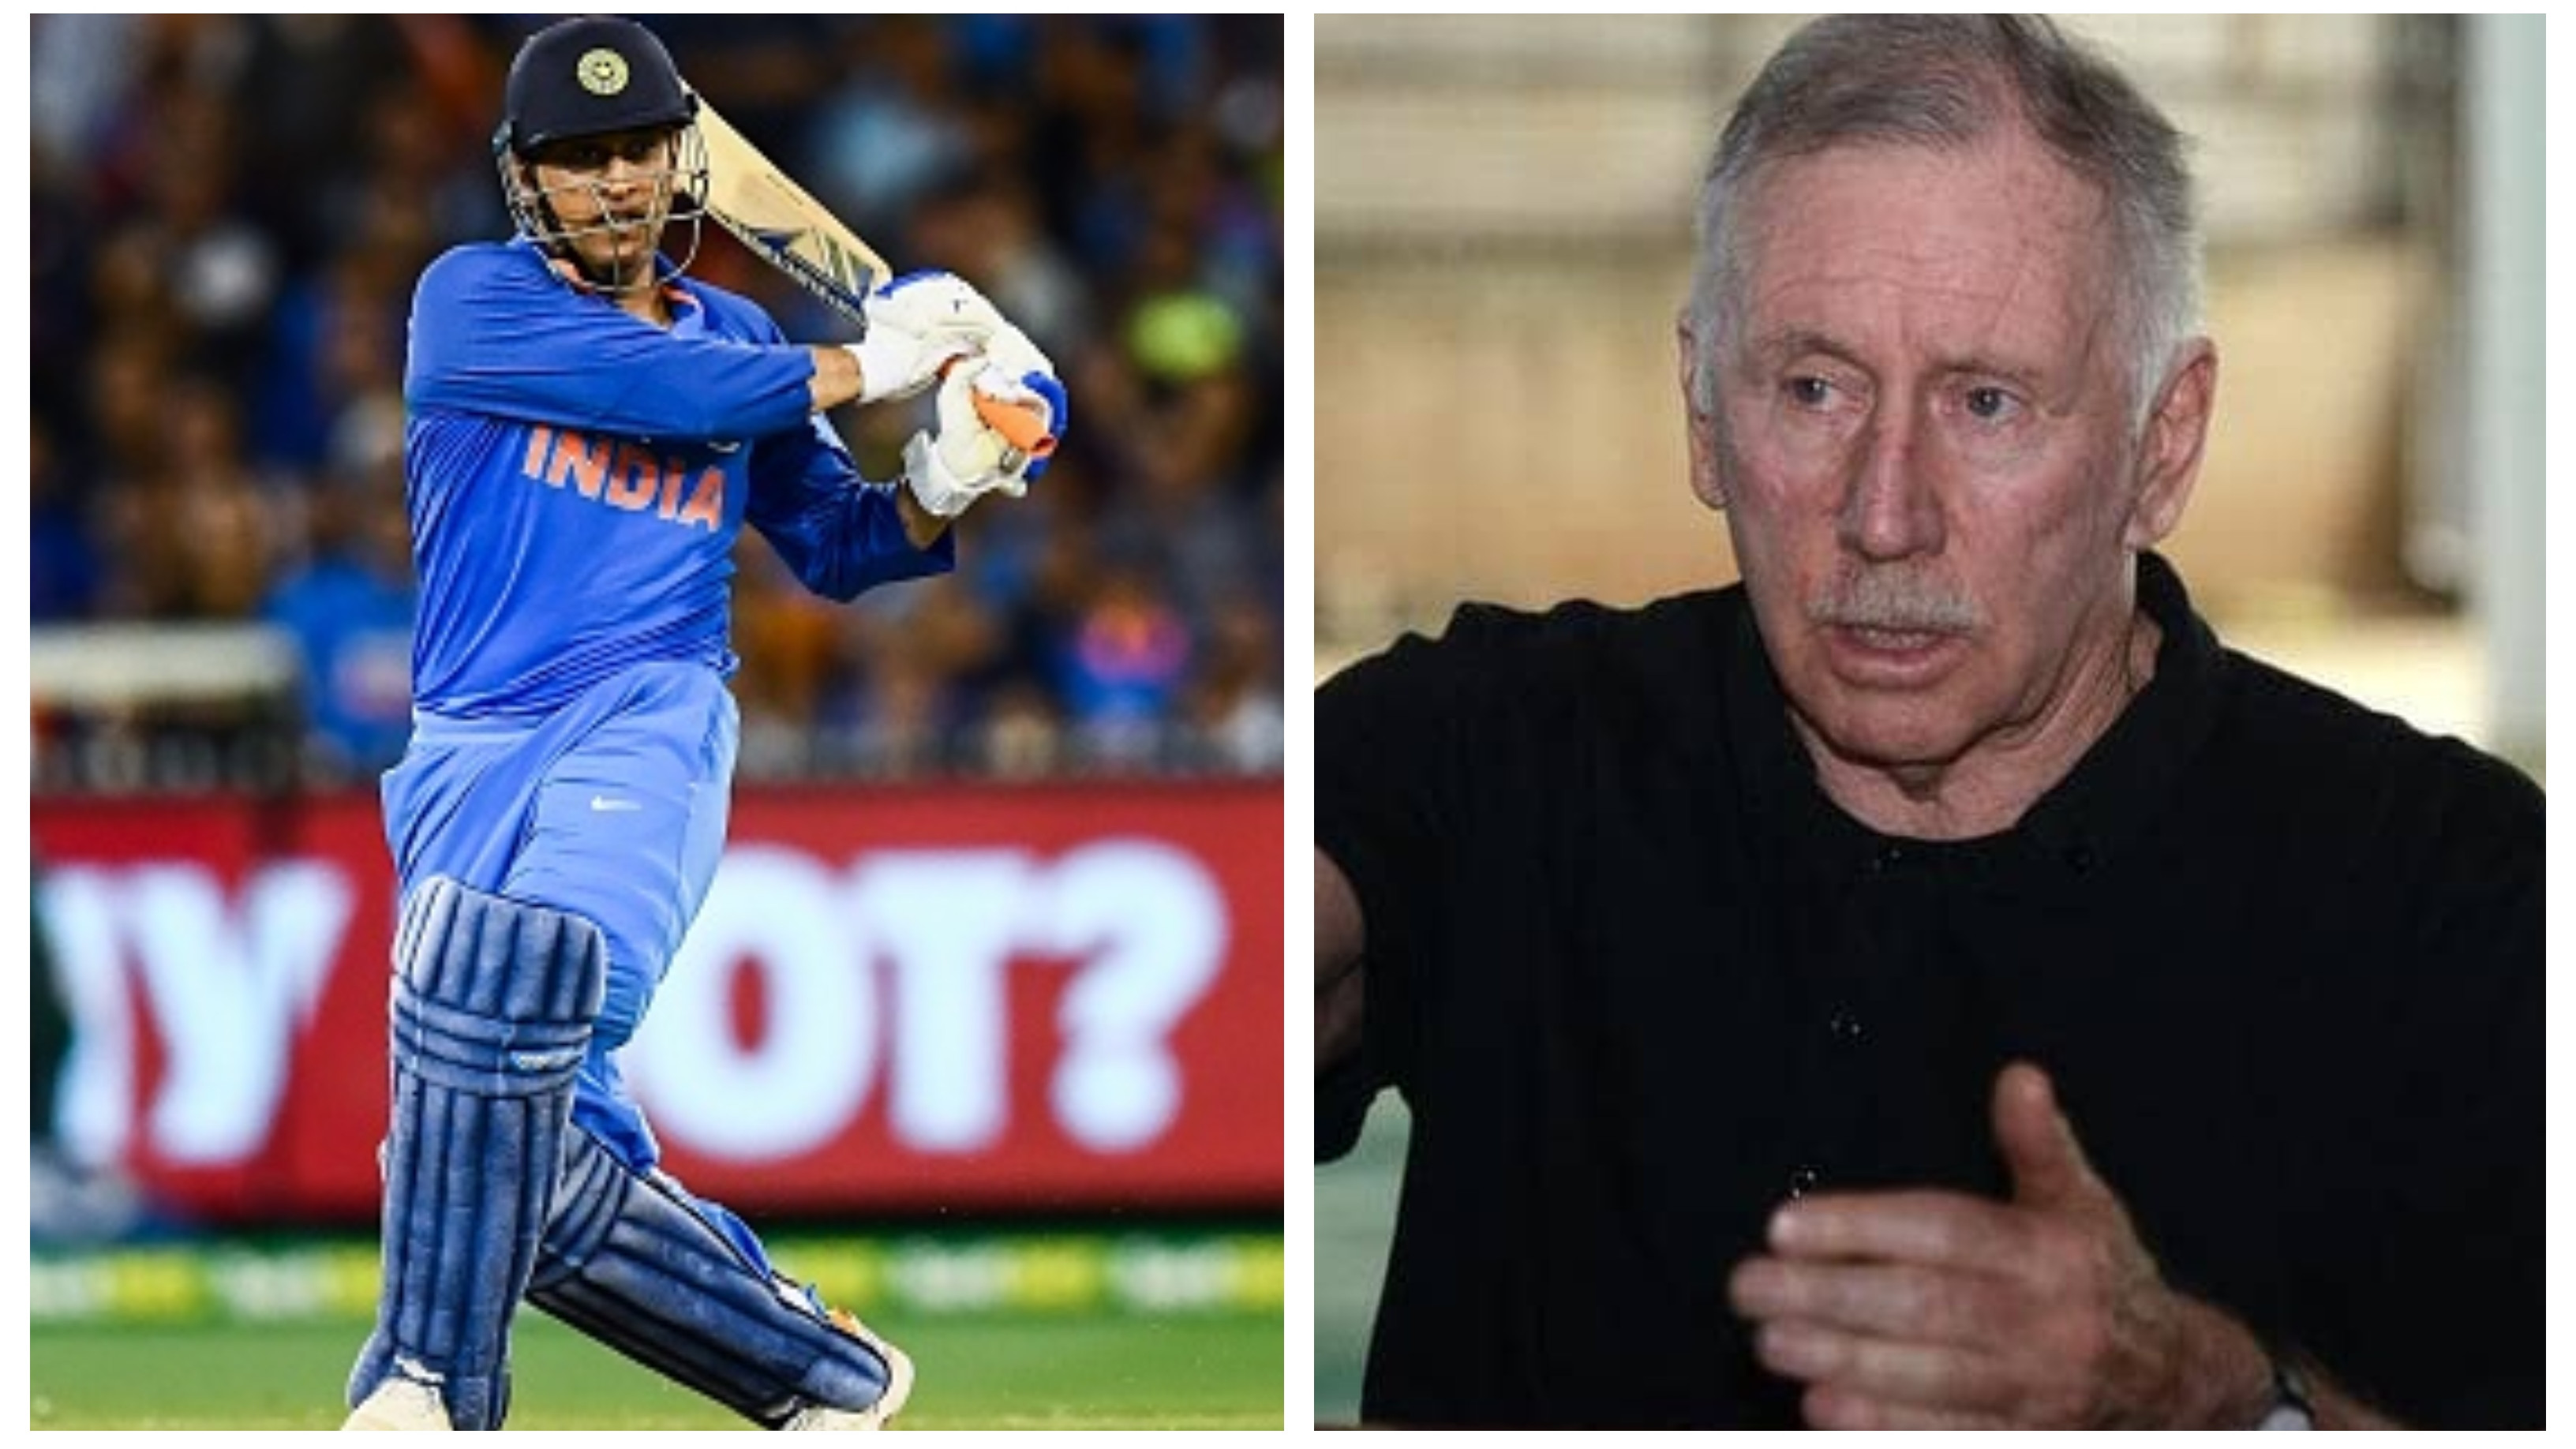 AUS v IND 2018-19: Ian Chappell rates MS Dhoni as world's best ODI finisher